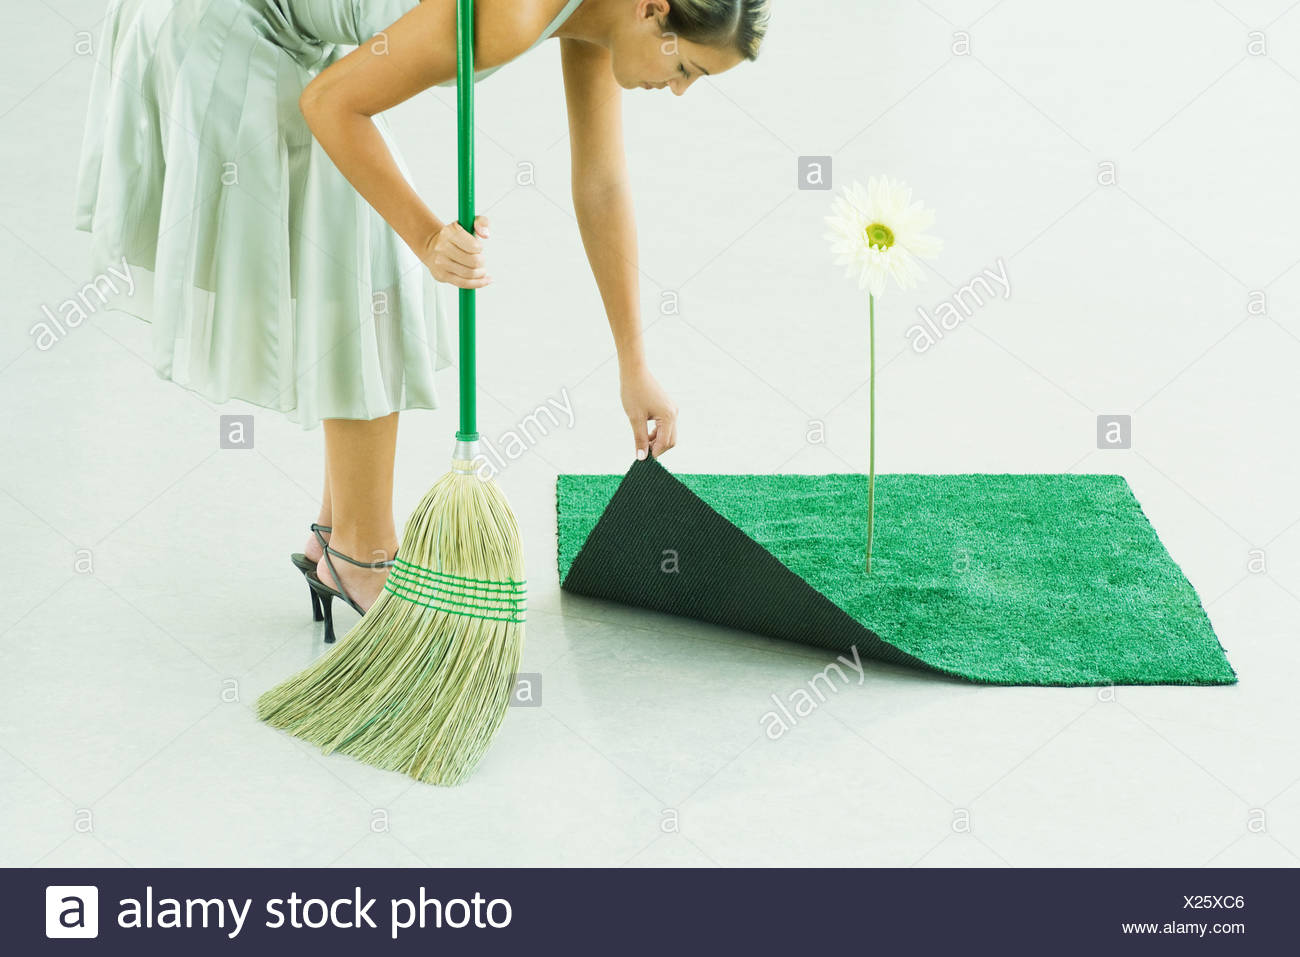 Woman bending over, broom in hand, lifting corner of artificial turf next to gerbera daisy - Stock Image